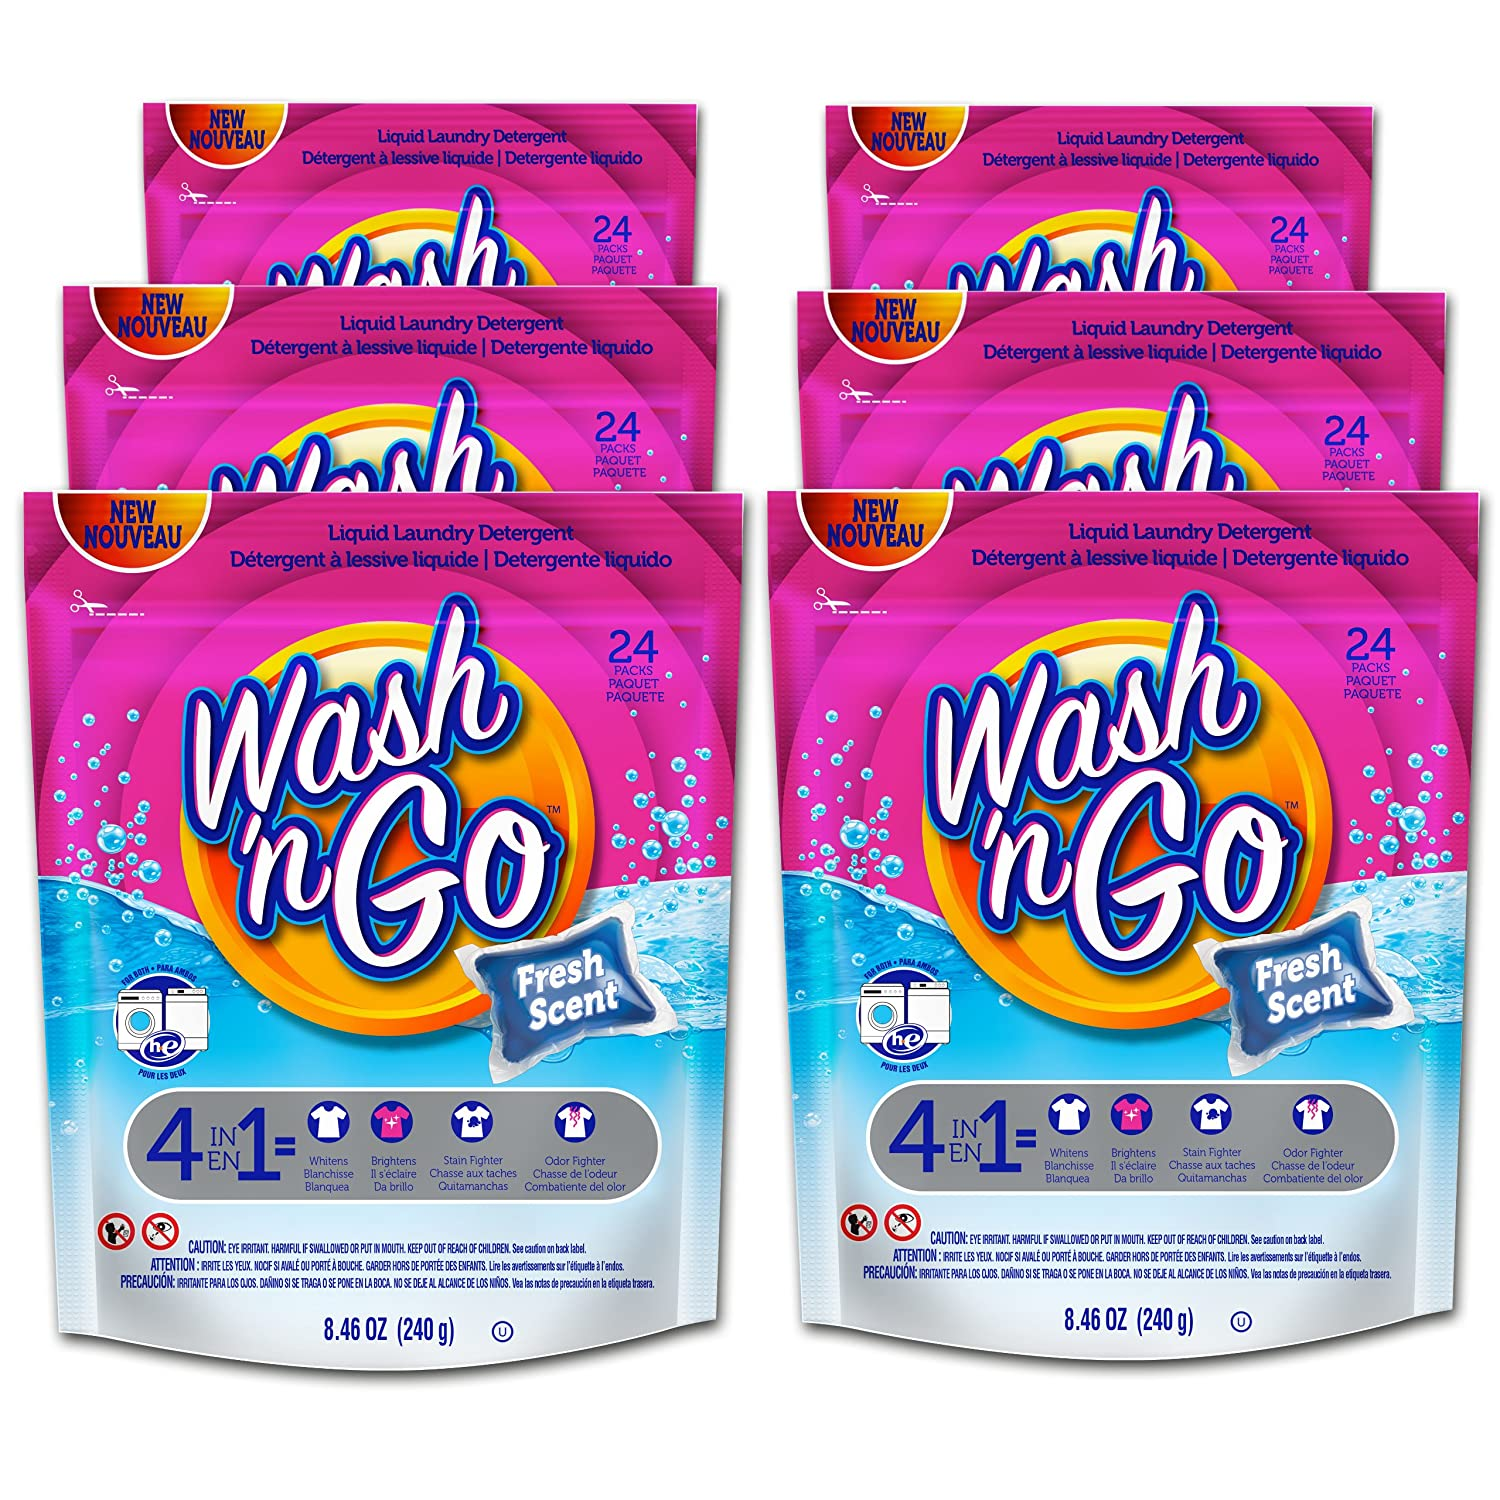 Amazon.com: Wash n Go Liquid Detergent Singles Fresh Scent, 24 Count x 6 (144 Count Total): Health & Personal Care